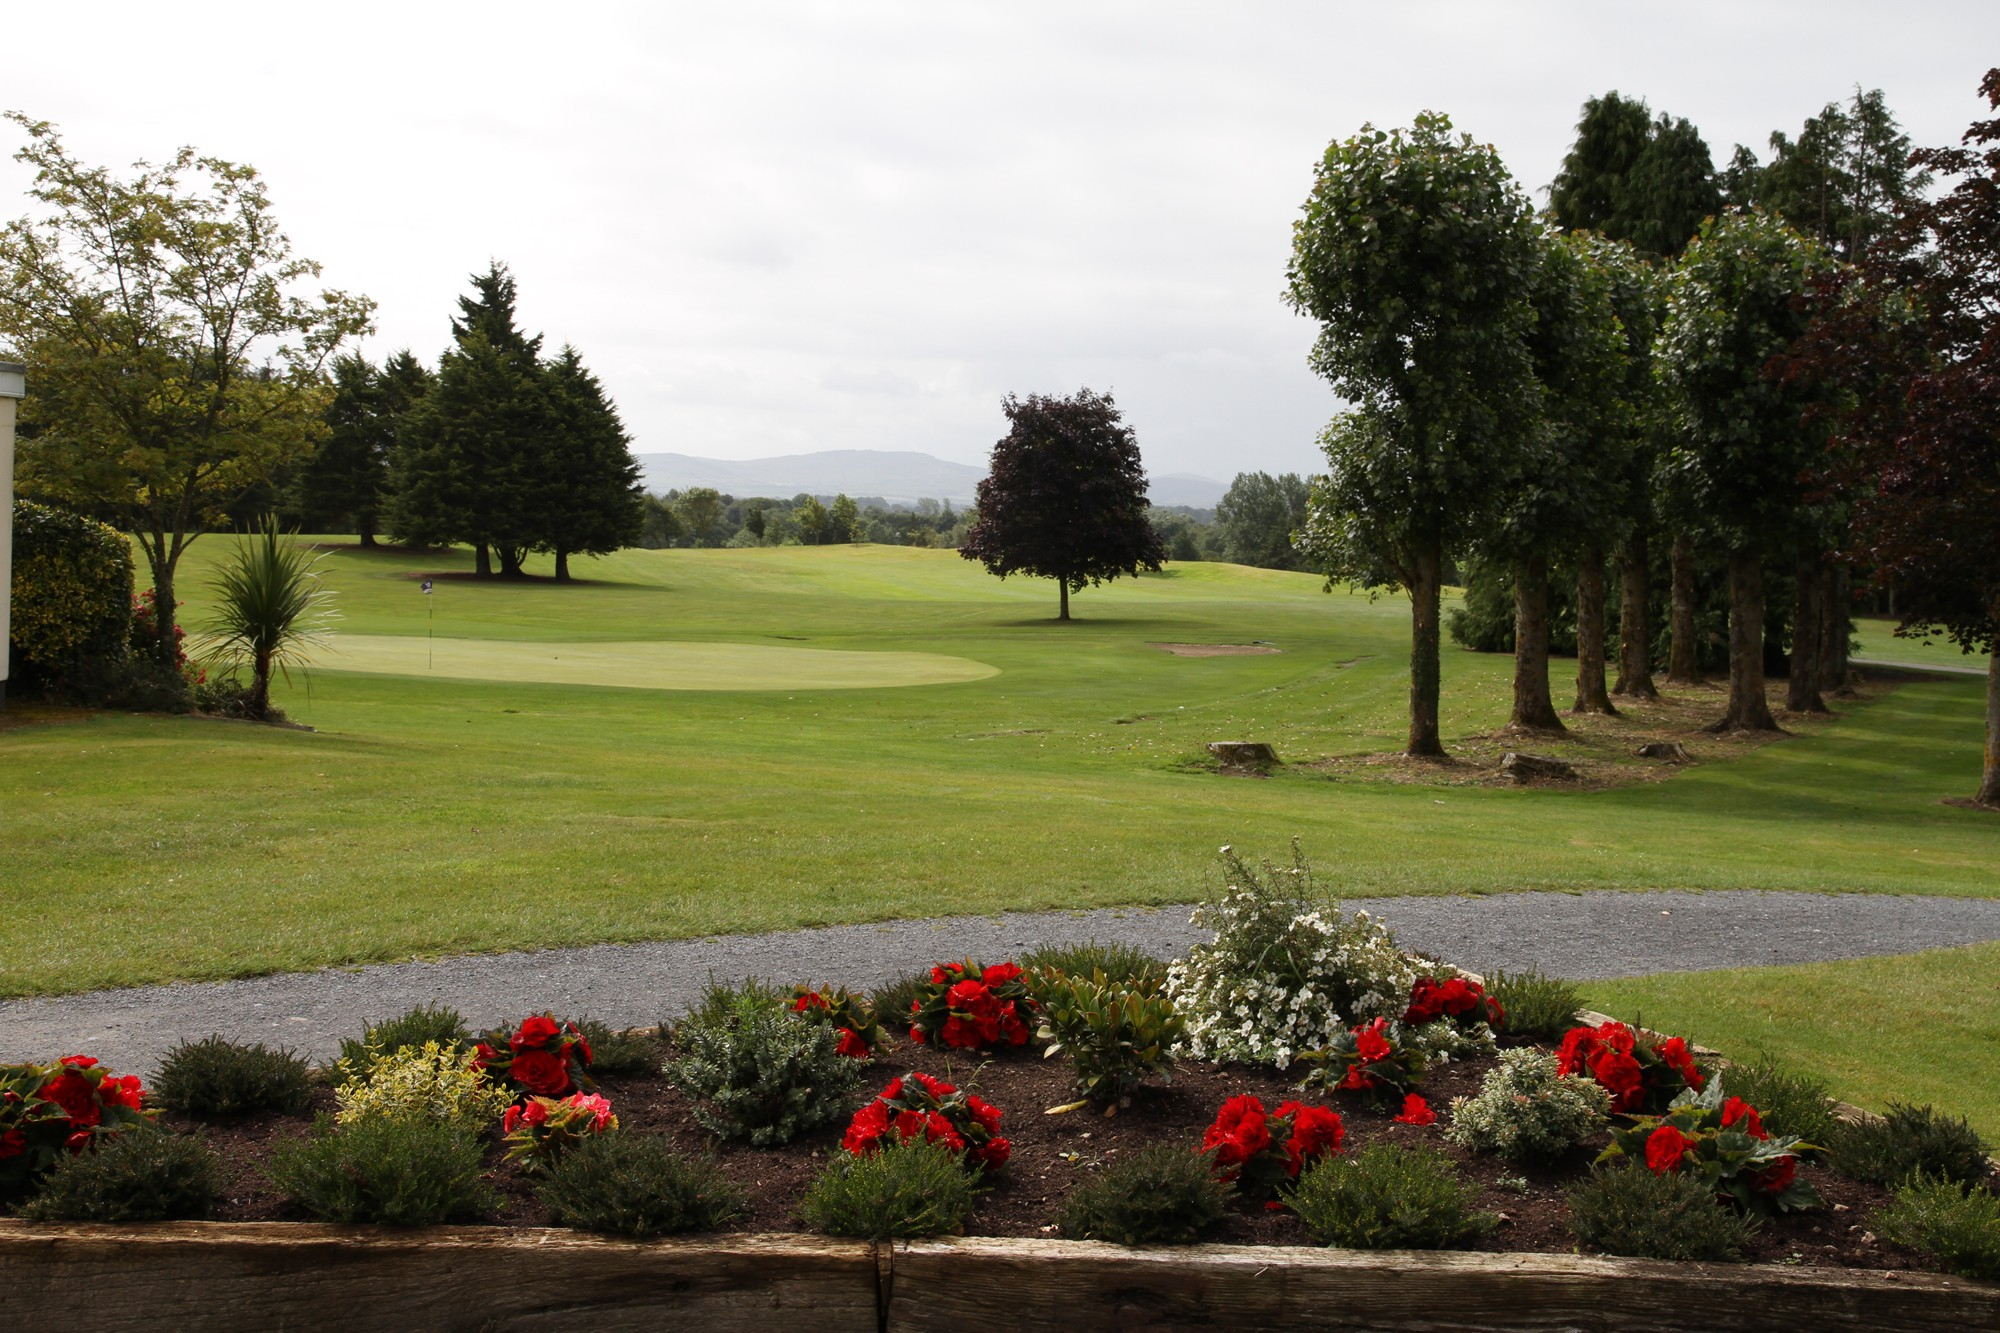 Nenagh Golf Club opens for golf on Monday 18th May.Members only.